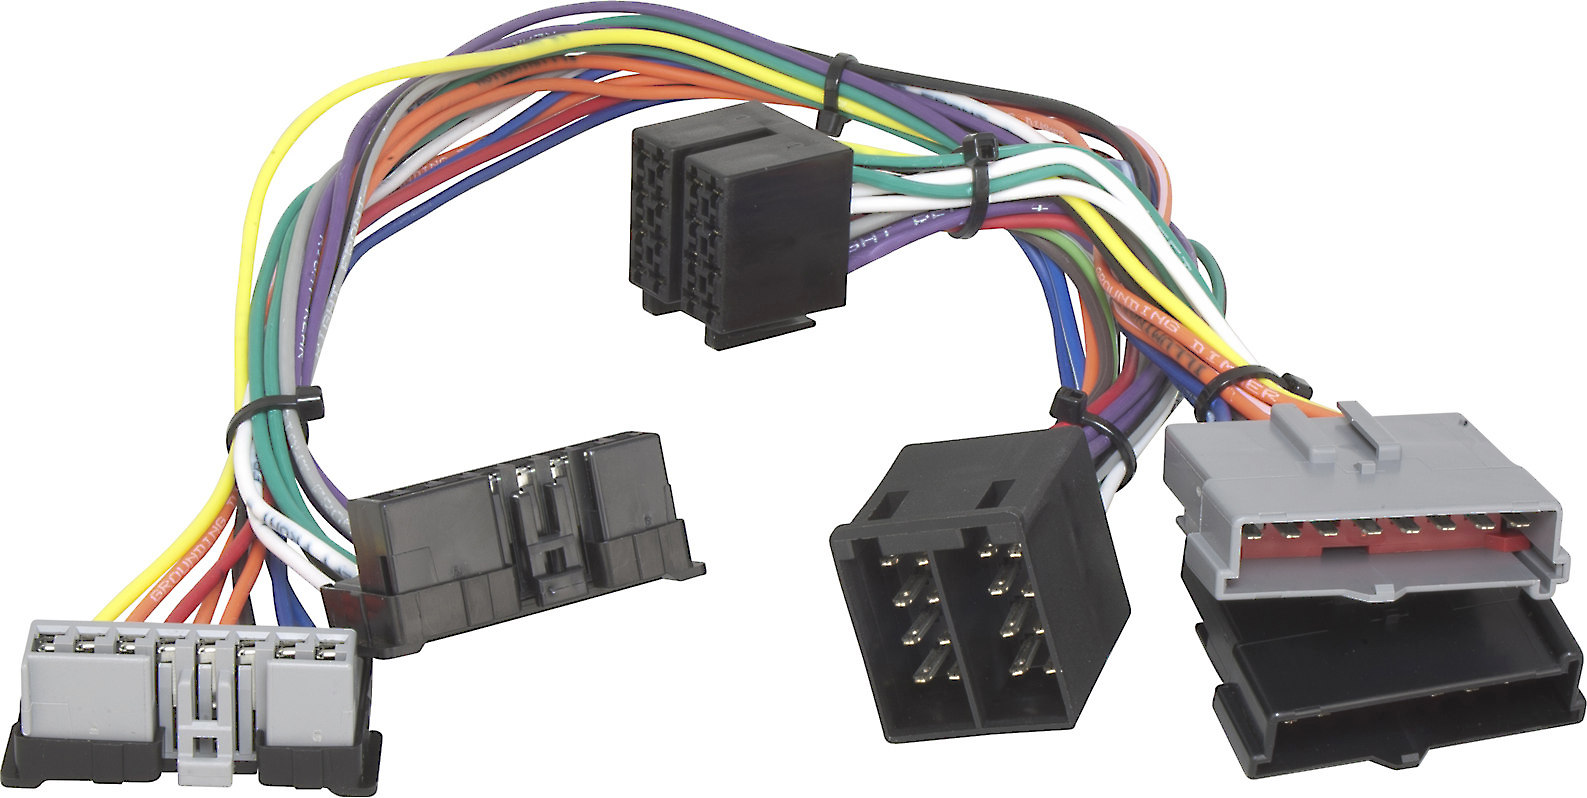 ford bluetooth� wiring harness connects parrot bluetooth cell phone kits to  the factory stereo in select 1986-2002 ford vehicles at crutchfield